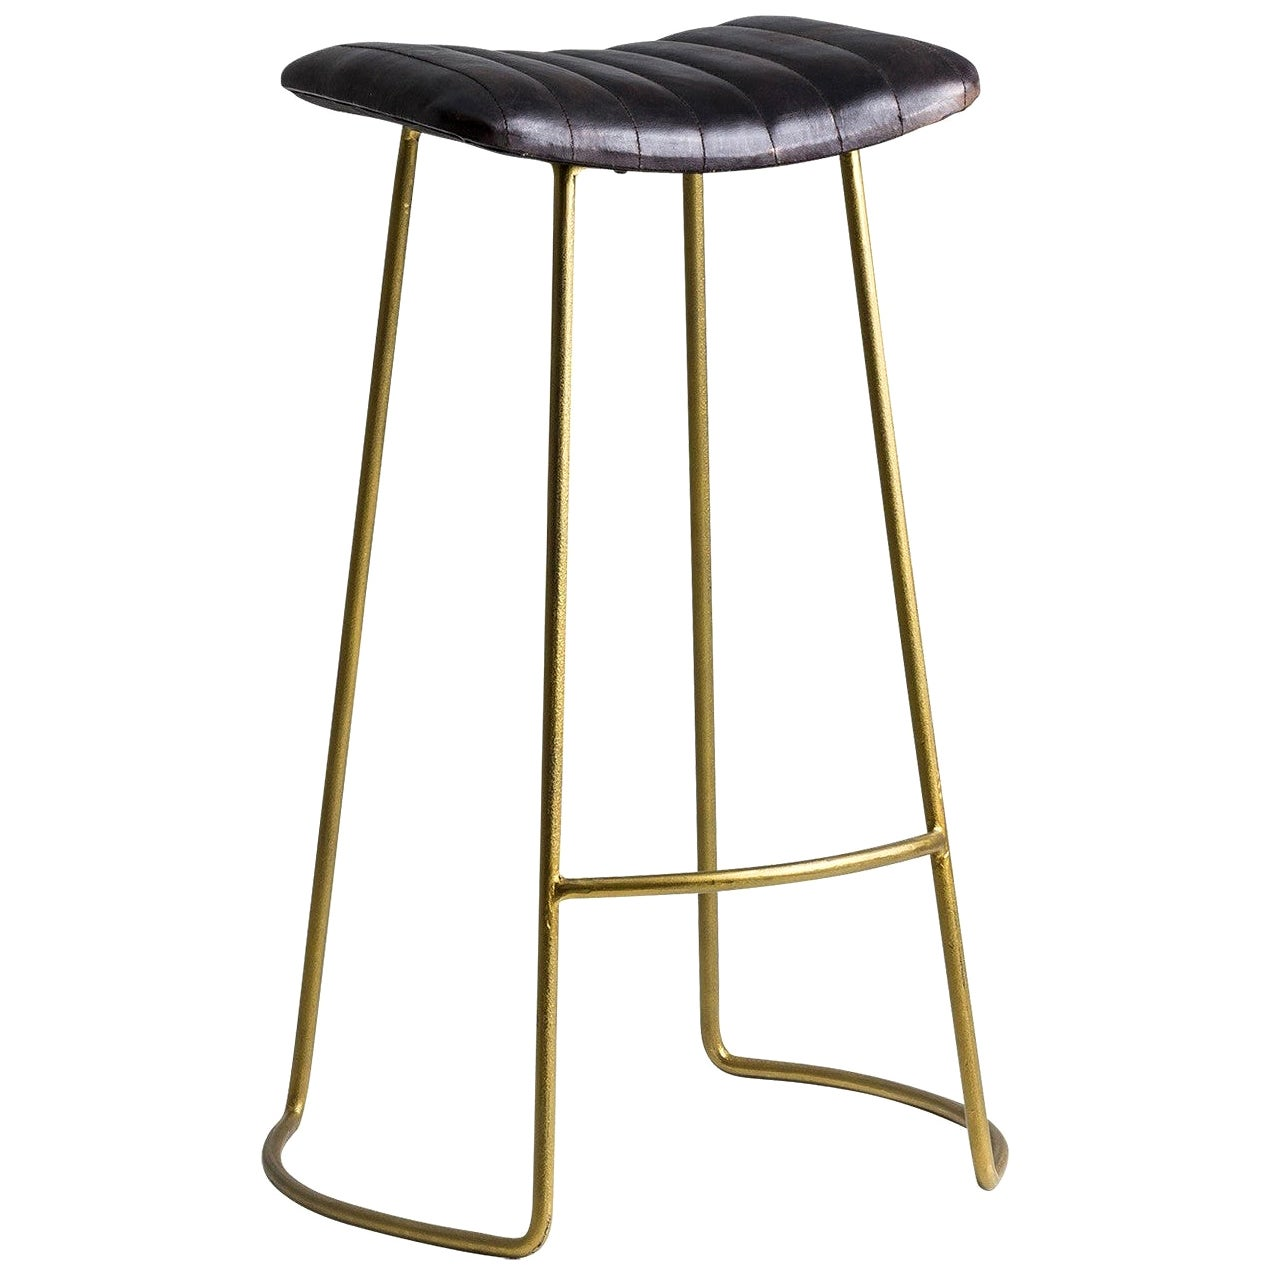 Gold Metal and Leather Bar Stool